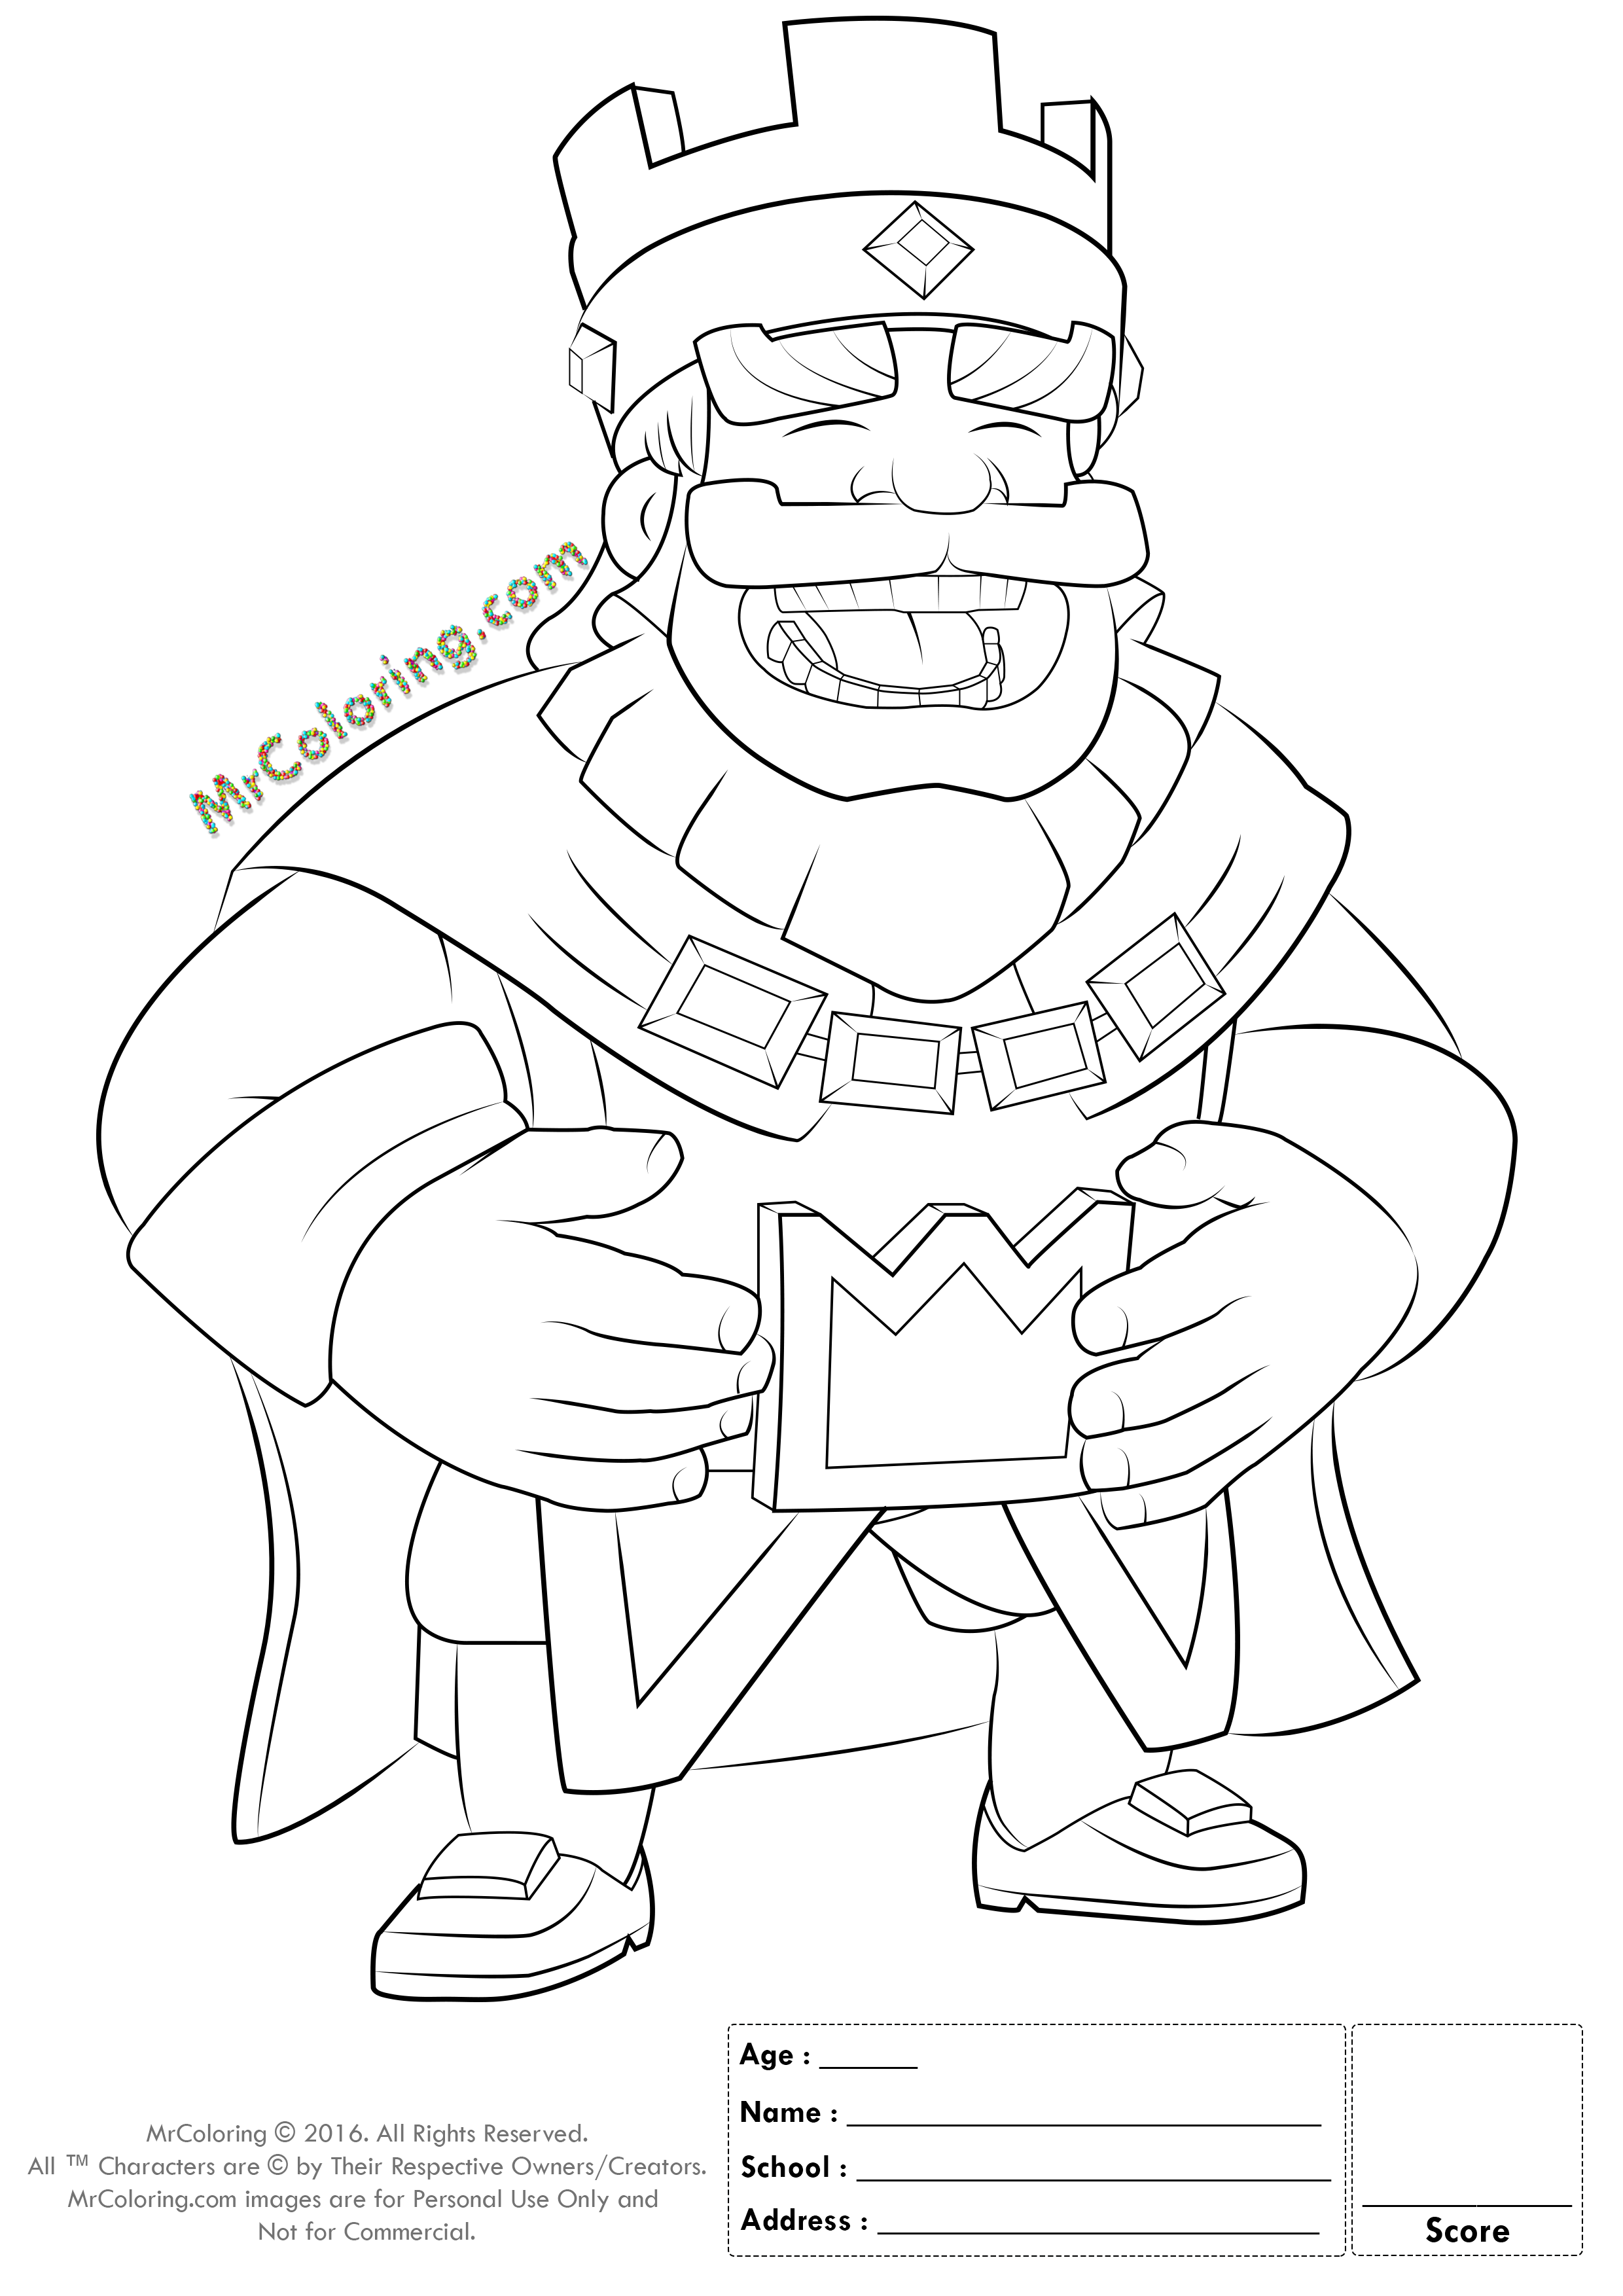 Printable Blue King Clash Royale Online Coloring Pages - 1 | Free ...